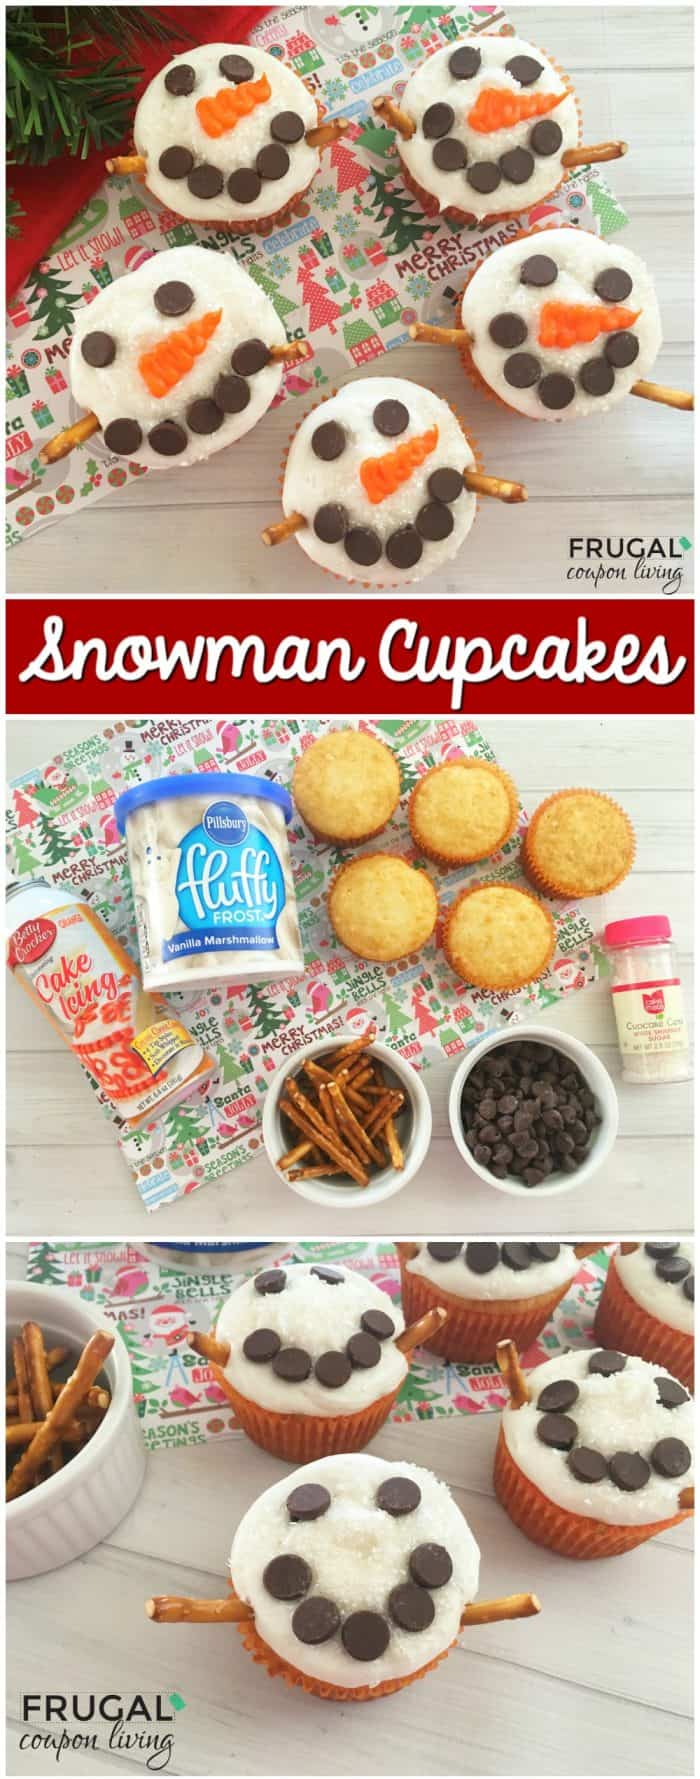 snowman-cupcakes-frugal-coupon-living-long